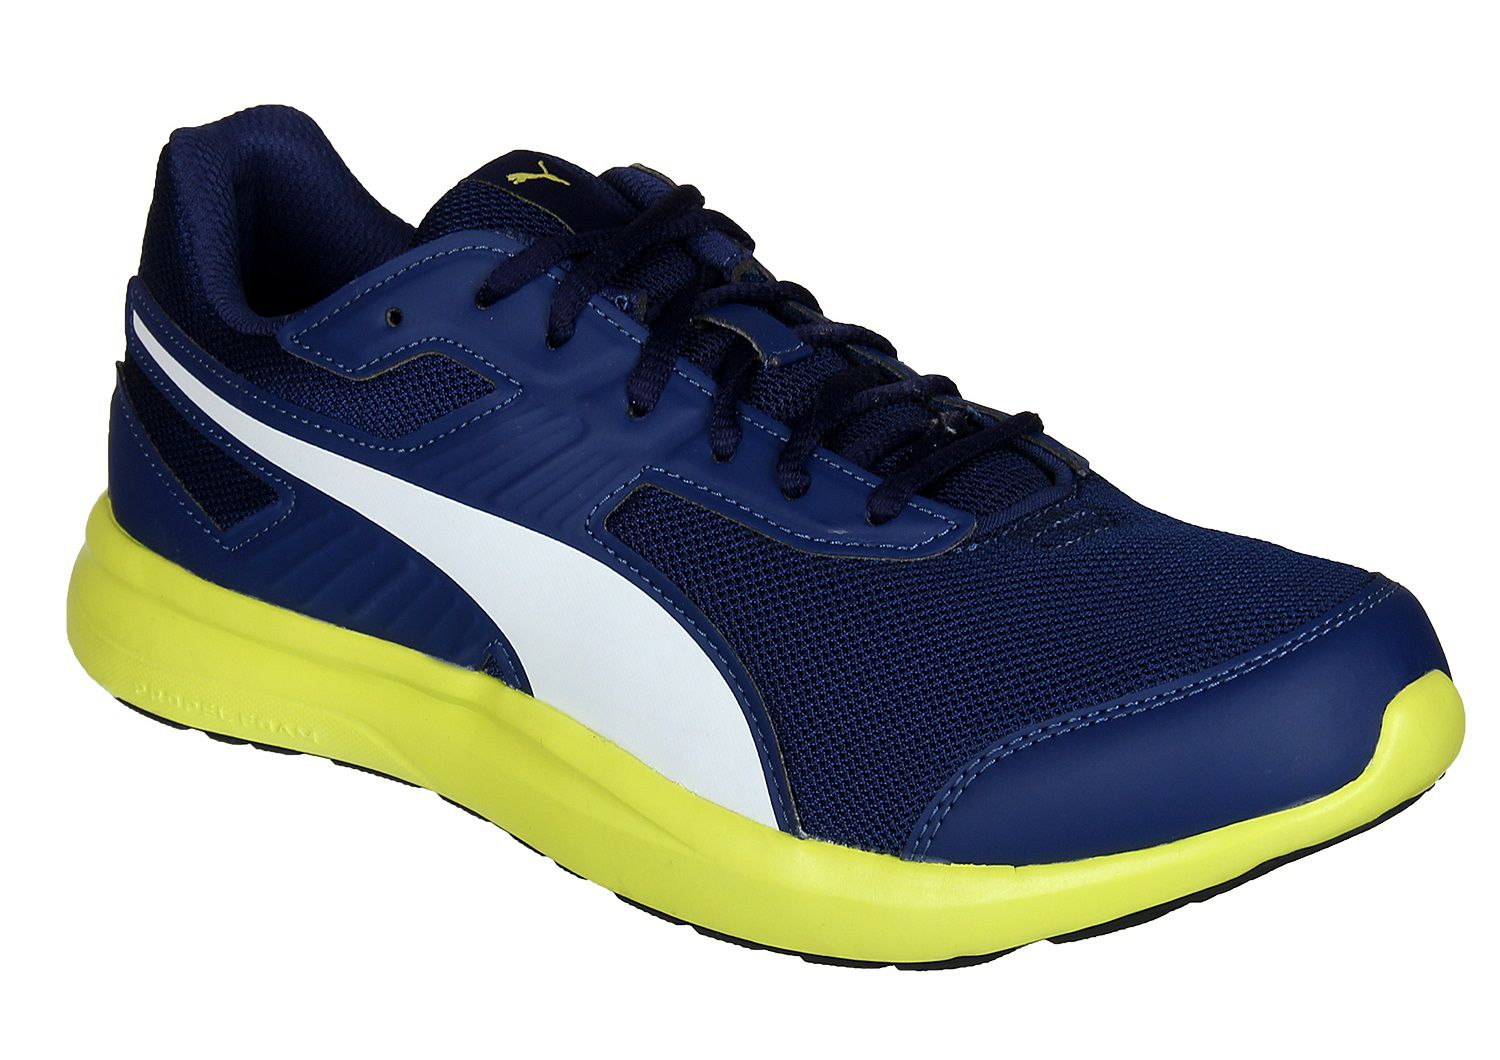 Puma Men Escaper Mesh Blue Running Shoes - Buy Puma Men Escaper Mesh Blue Running  Shoes Online at Best Prices in India on Snapdeal 5bce66503